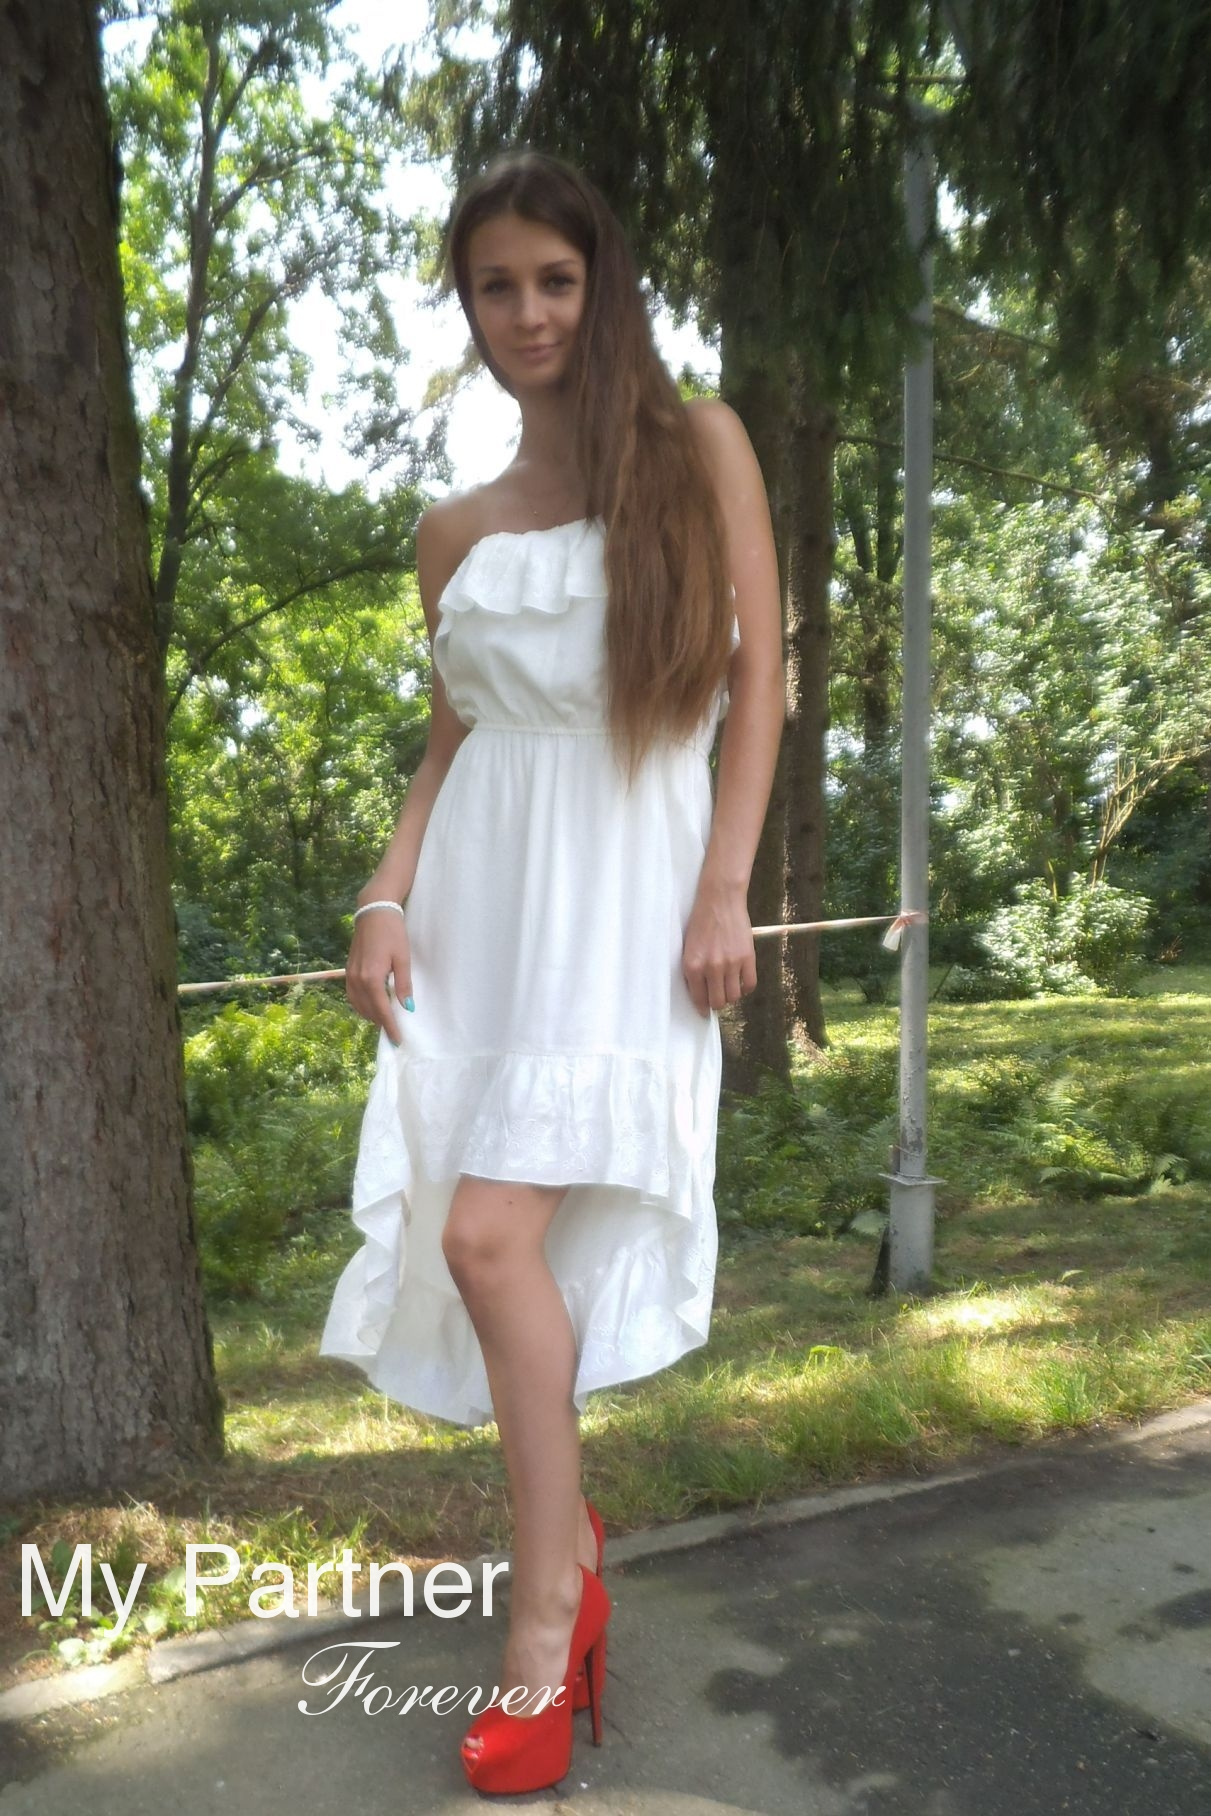 Ukrainian Girl Looking for Men - Kseniya from Vinnitsa, Ukraine